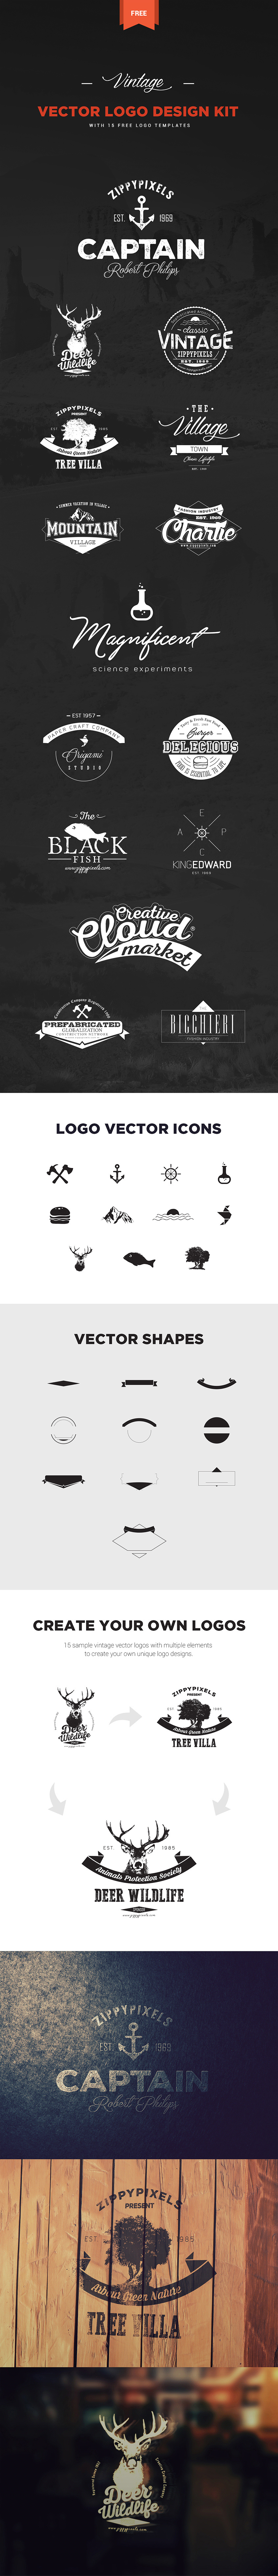 Editable logo templates with 21 vector designs